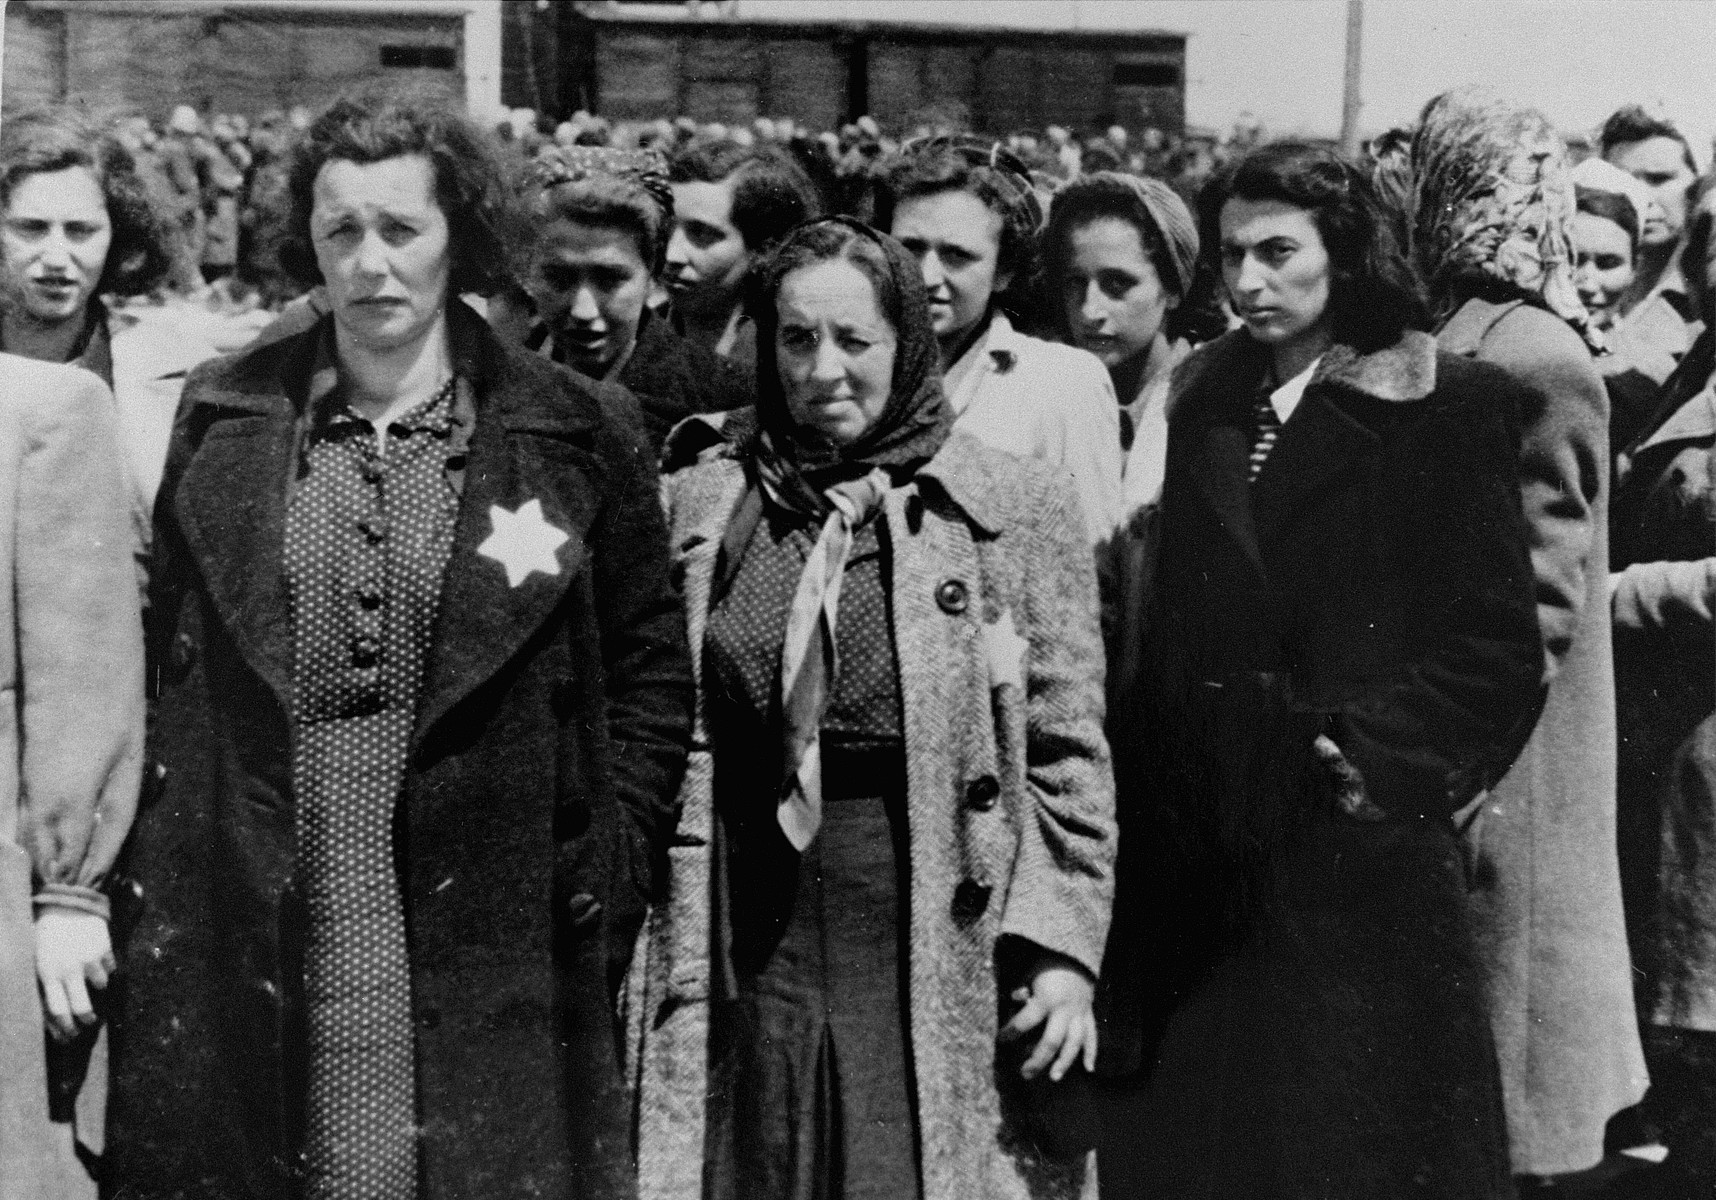 Jewish women from Subcarpathian Rus who have been selected for forced labor at Auschwitz-Birkenau, wait to be taken to another section of the camp.   Pictured in the front left is Mrs. Hegedush.